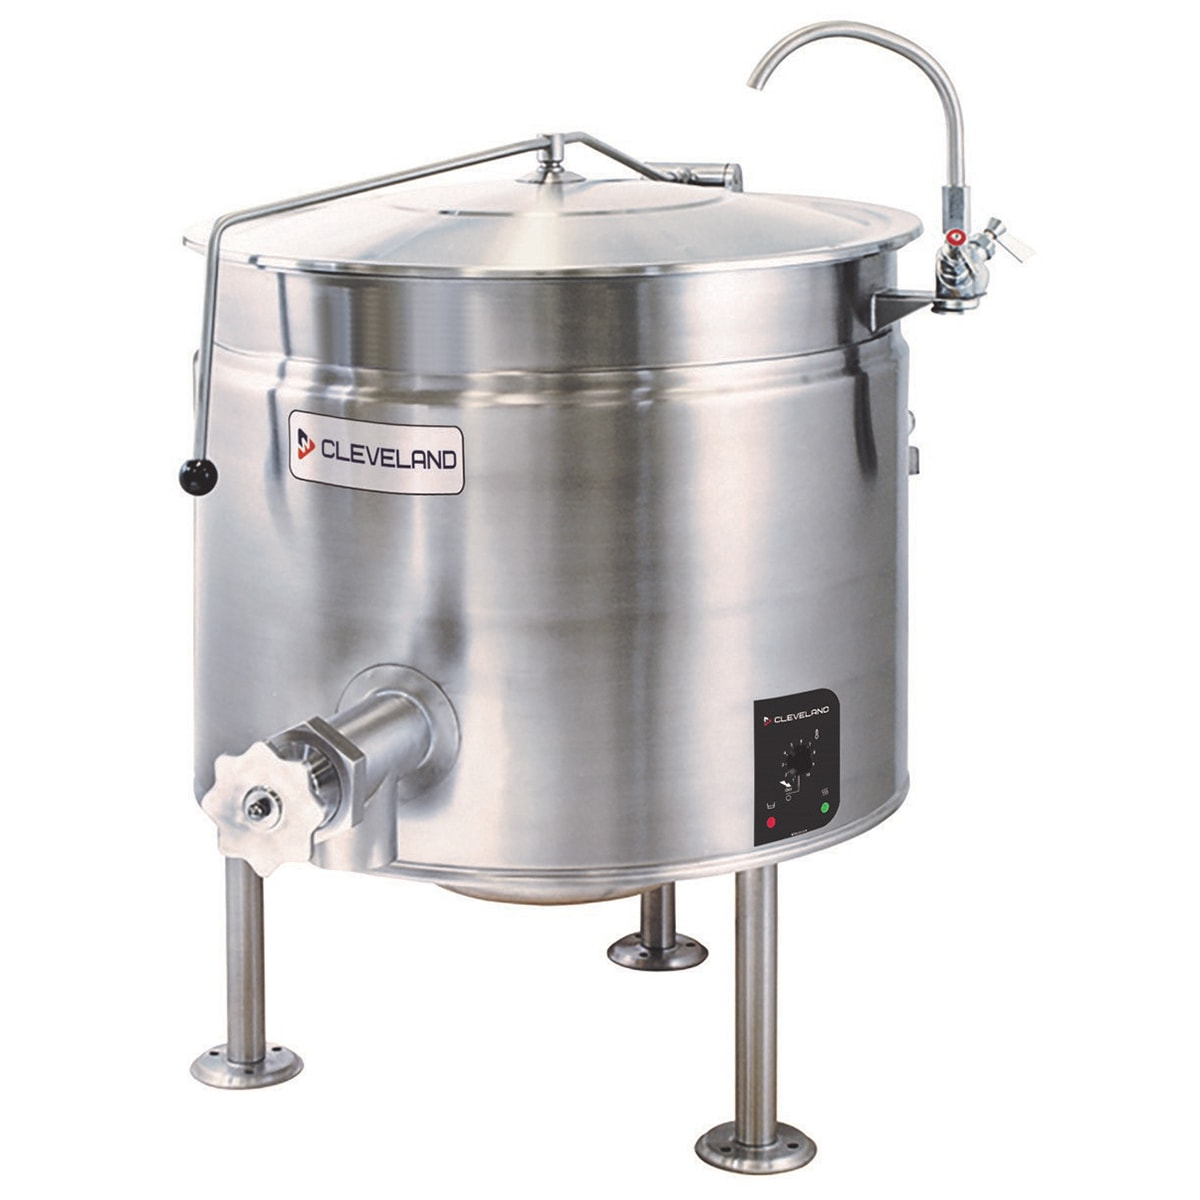 Cleveland KEL60SH 60-gal Full Steam Short Kettle w/ Open 3-Leg, 240v/3ph